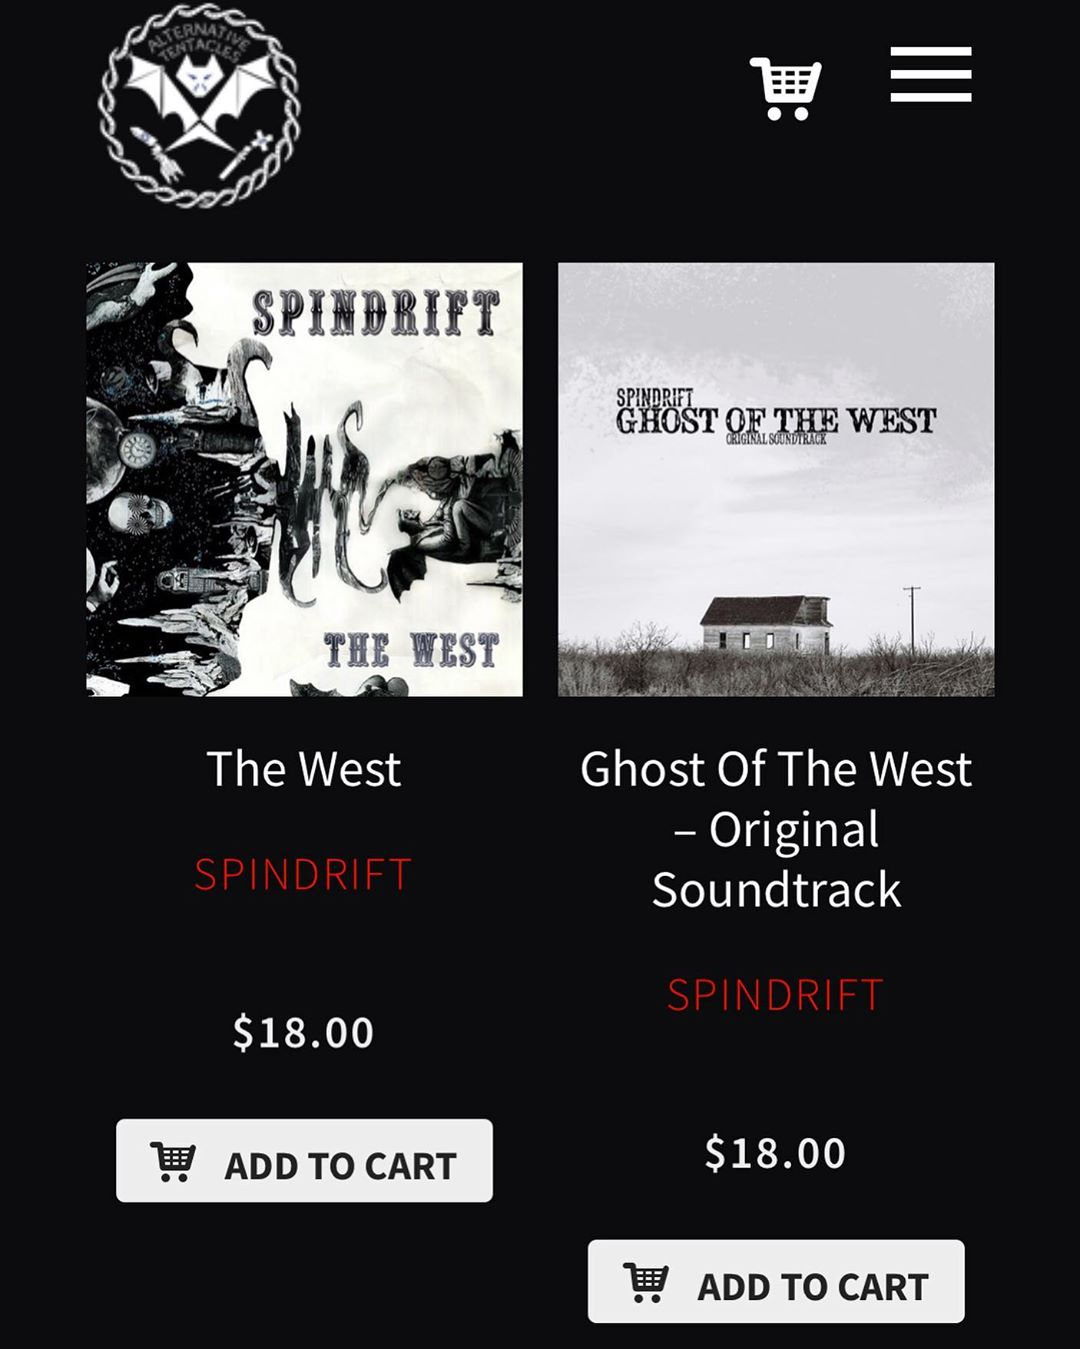 DYK? You can pick up #spindrift #vinyl including our new #bloodandwhiskey #songsfromtheancientage limited run @alternativetentacles store. ?? ????????????????????????@spindriftwest #spindriftwest #psychrock #spaghettiwestern #grindhouse #alternativetentacles